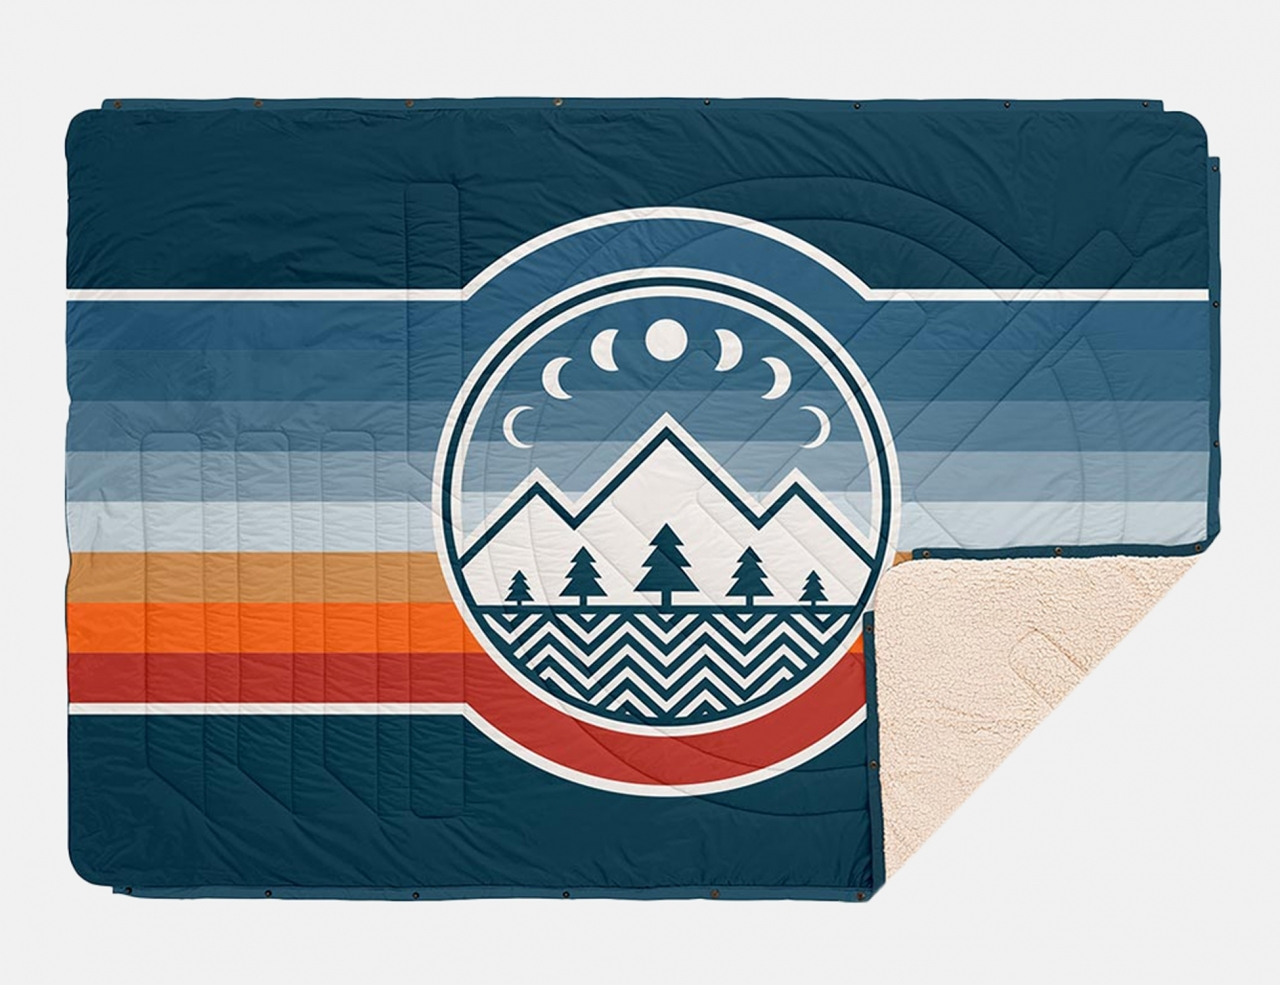 Voited CloudTouch Pillow Blanket - Camp Vibes 2